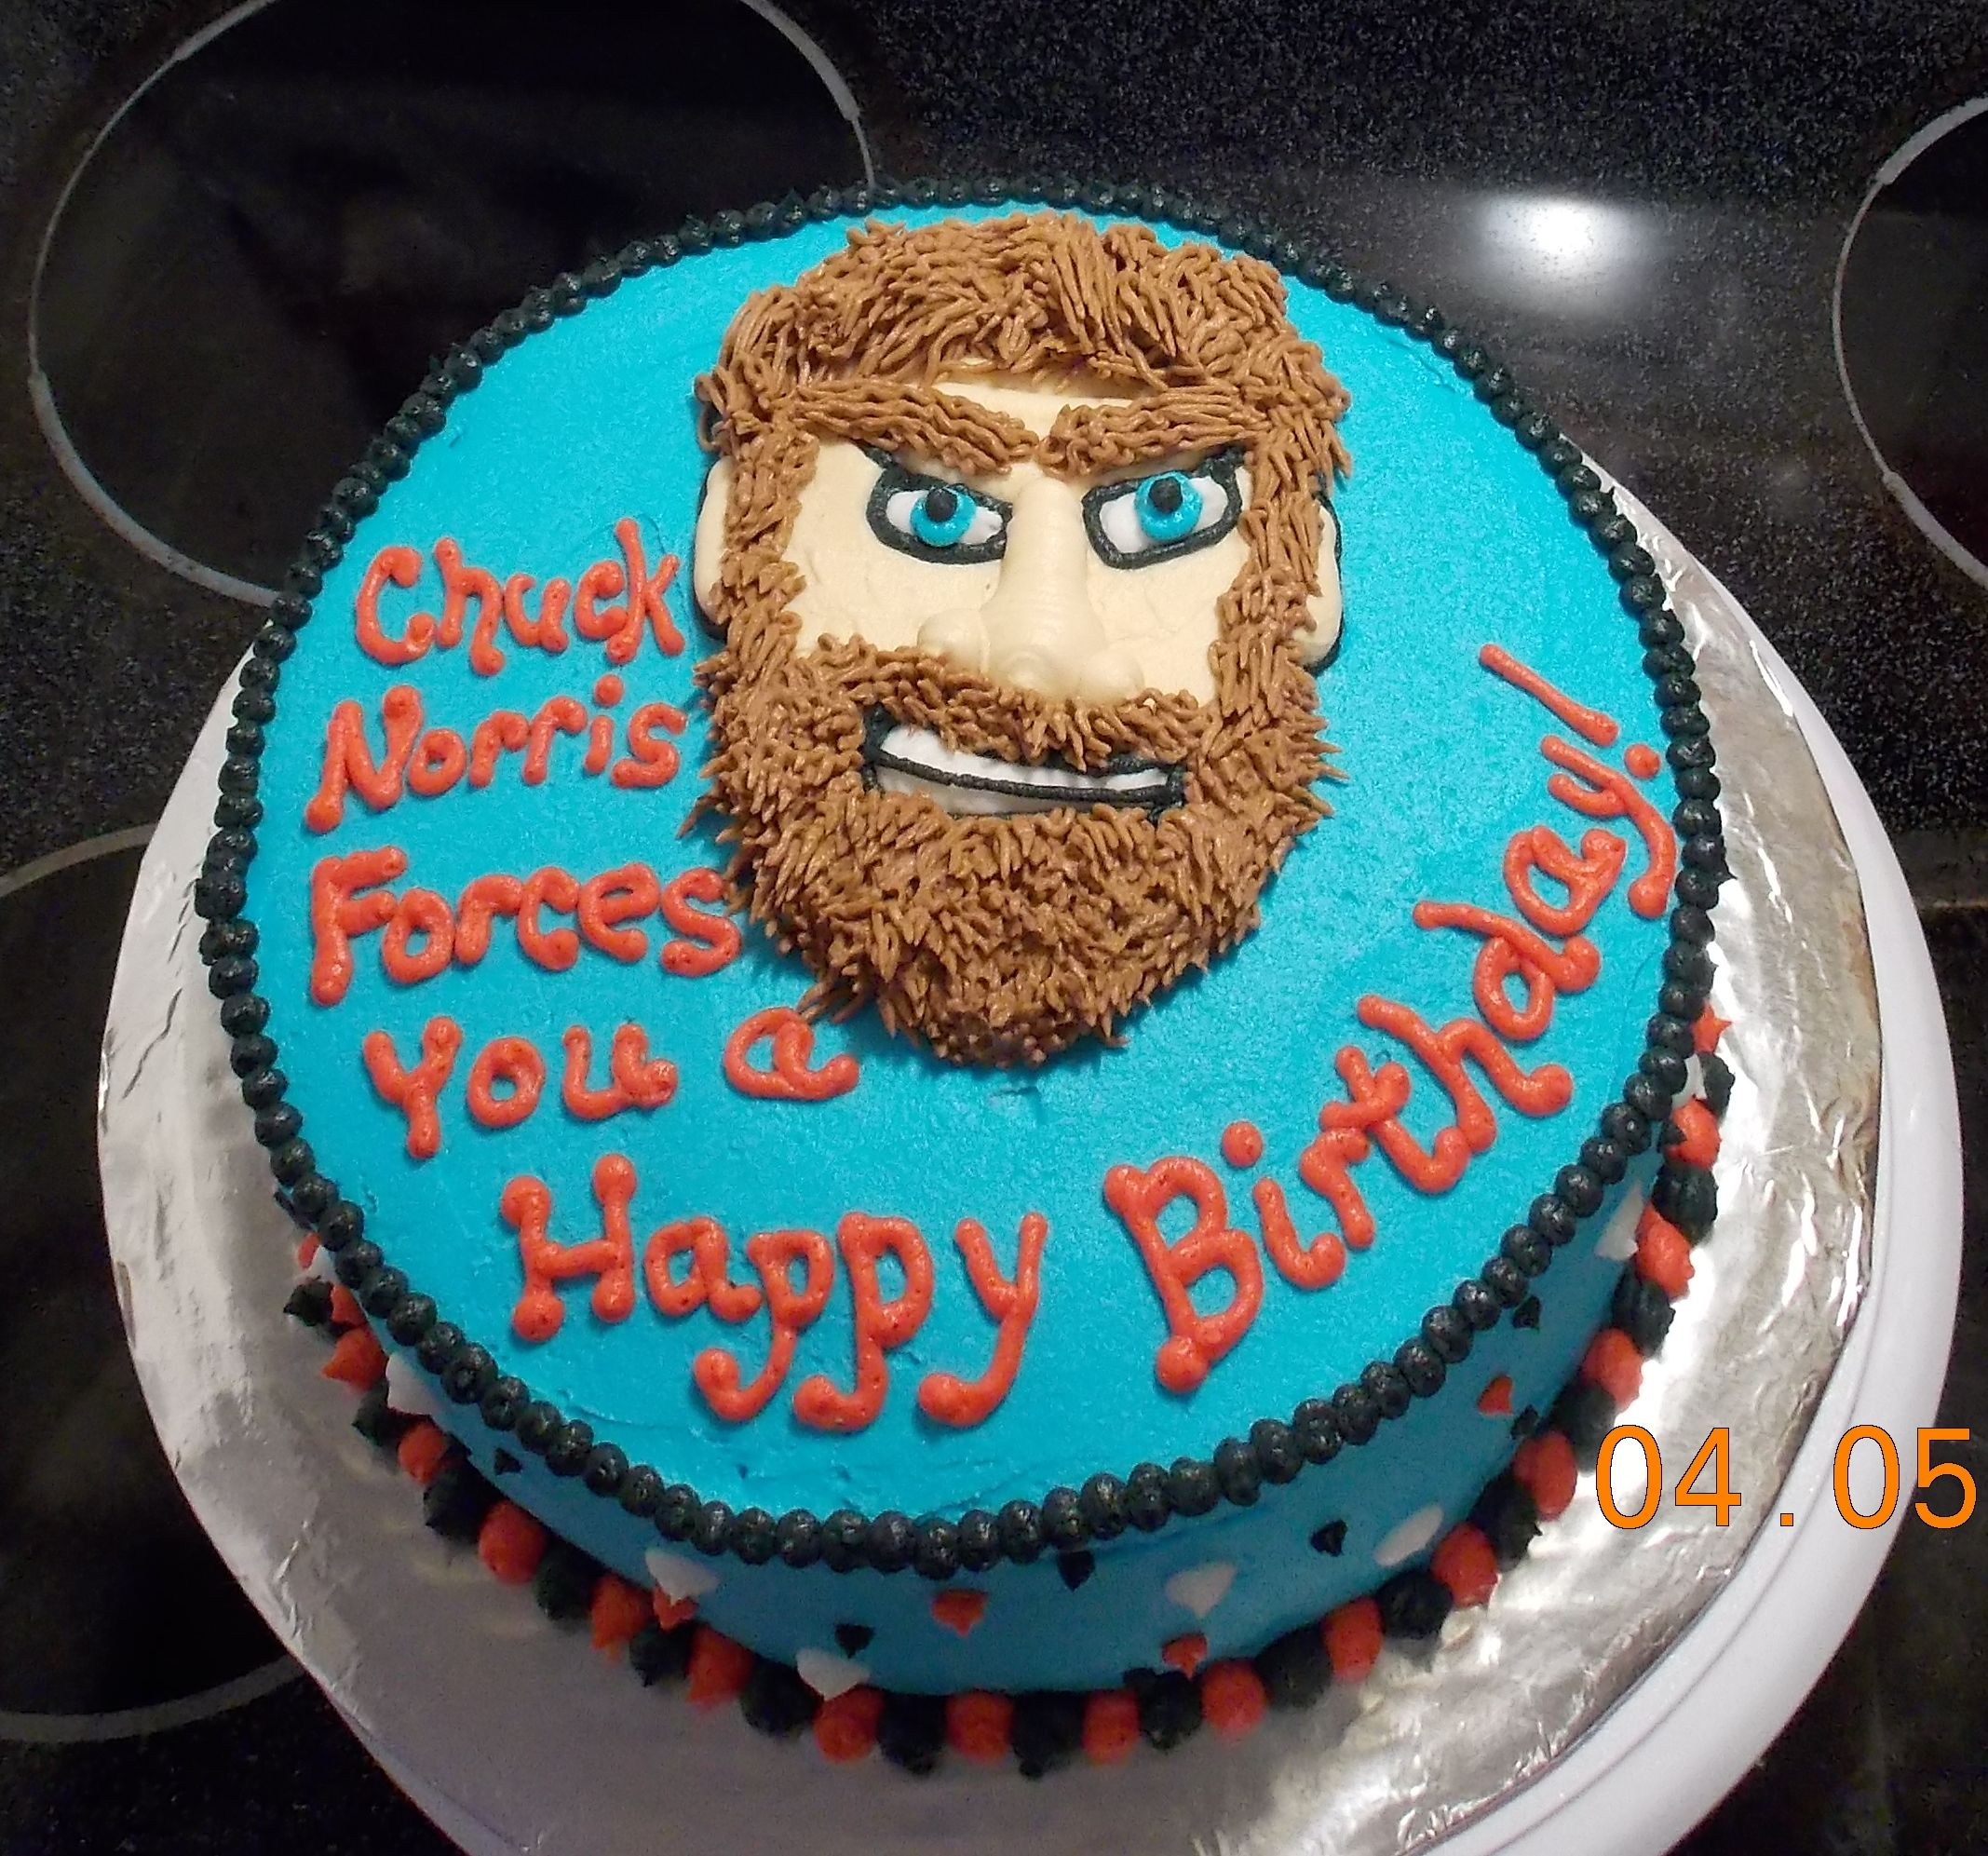 Outstanding Chuck Norris Cake For My Brother Its Our Thing Cake Desserts Funny Birthday Cards Online Alyptdamsfinfo